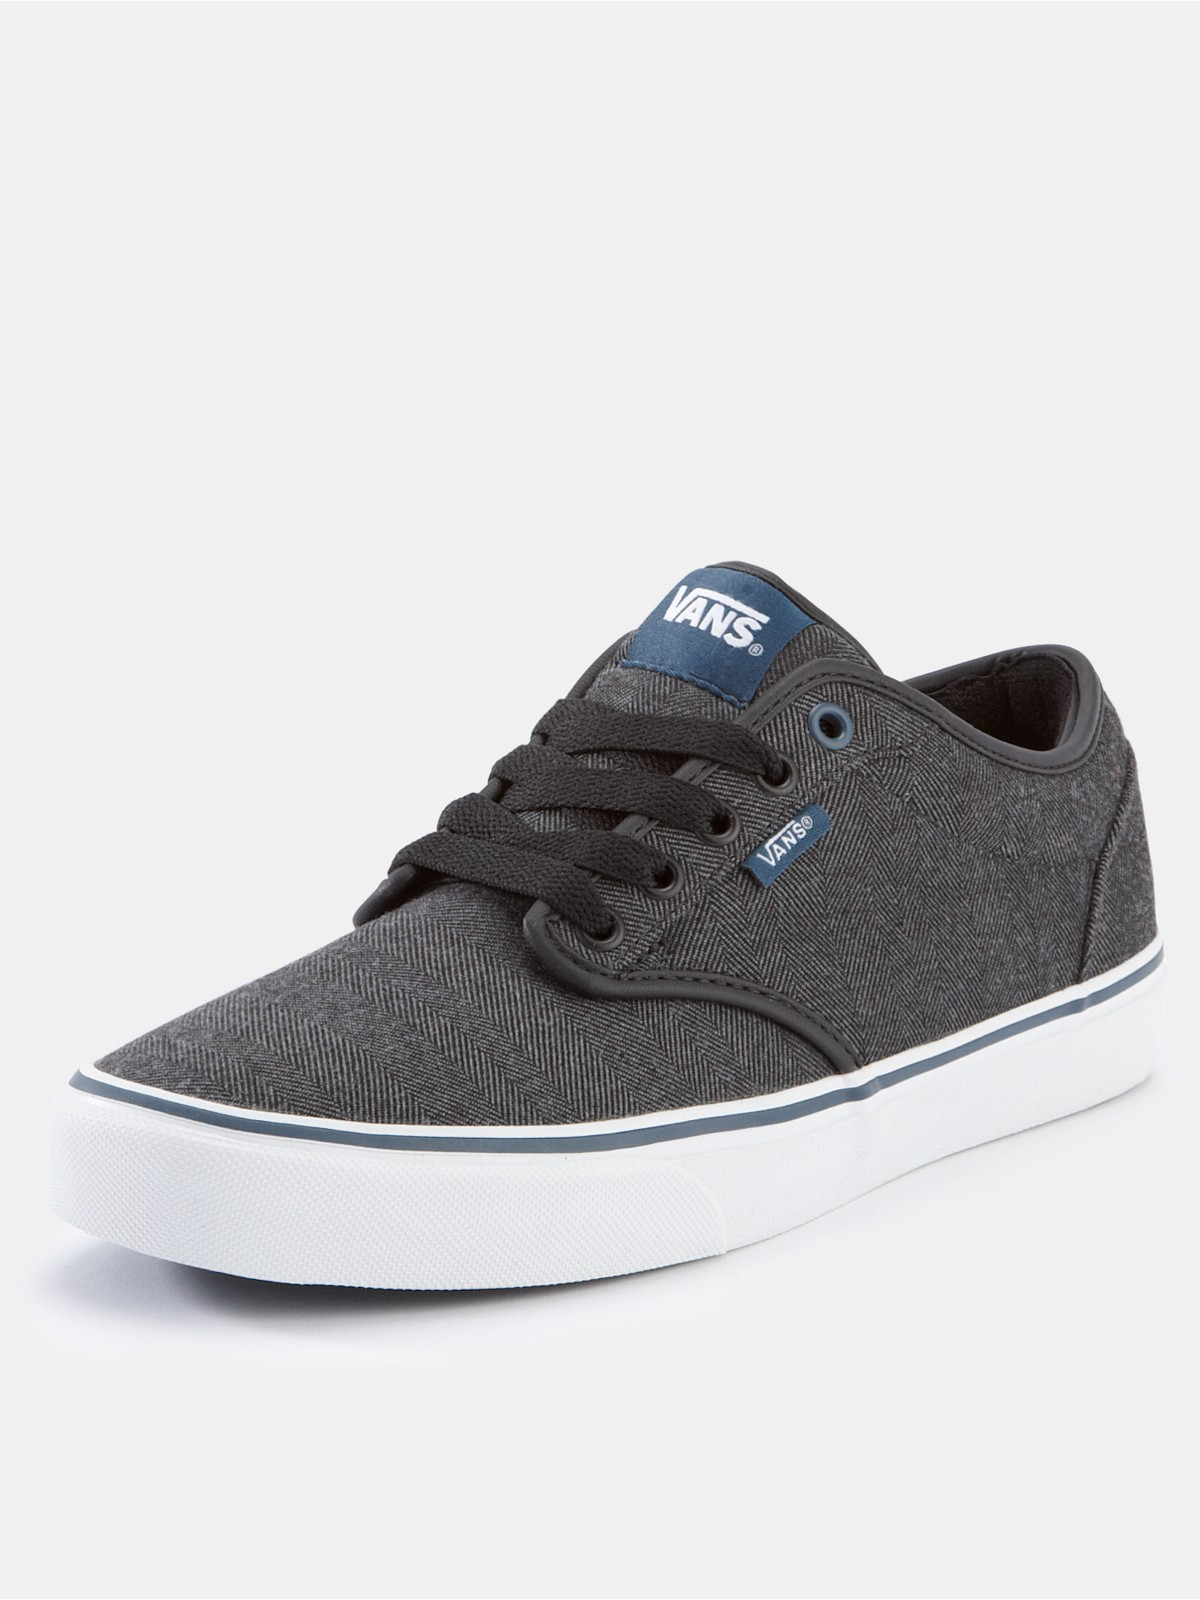 vans atwood black orion